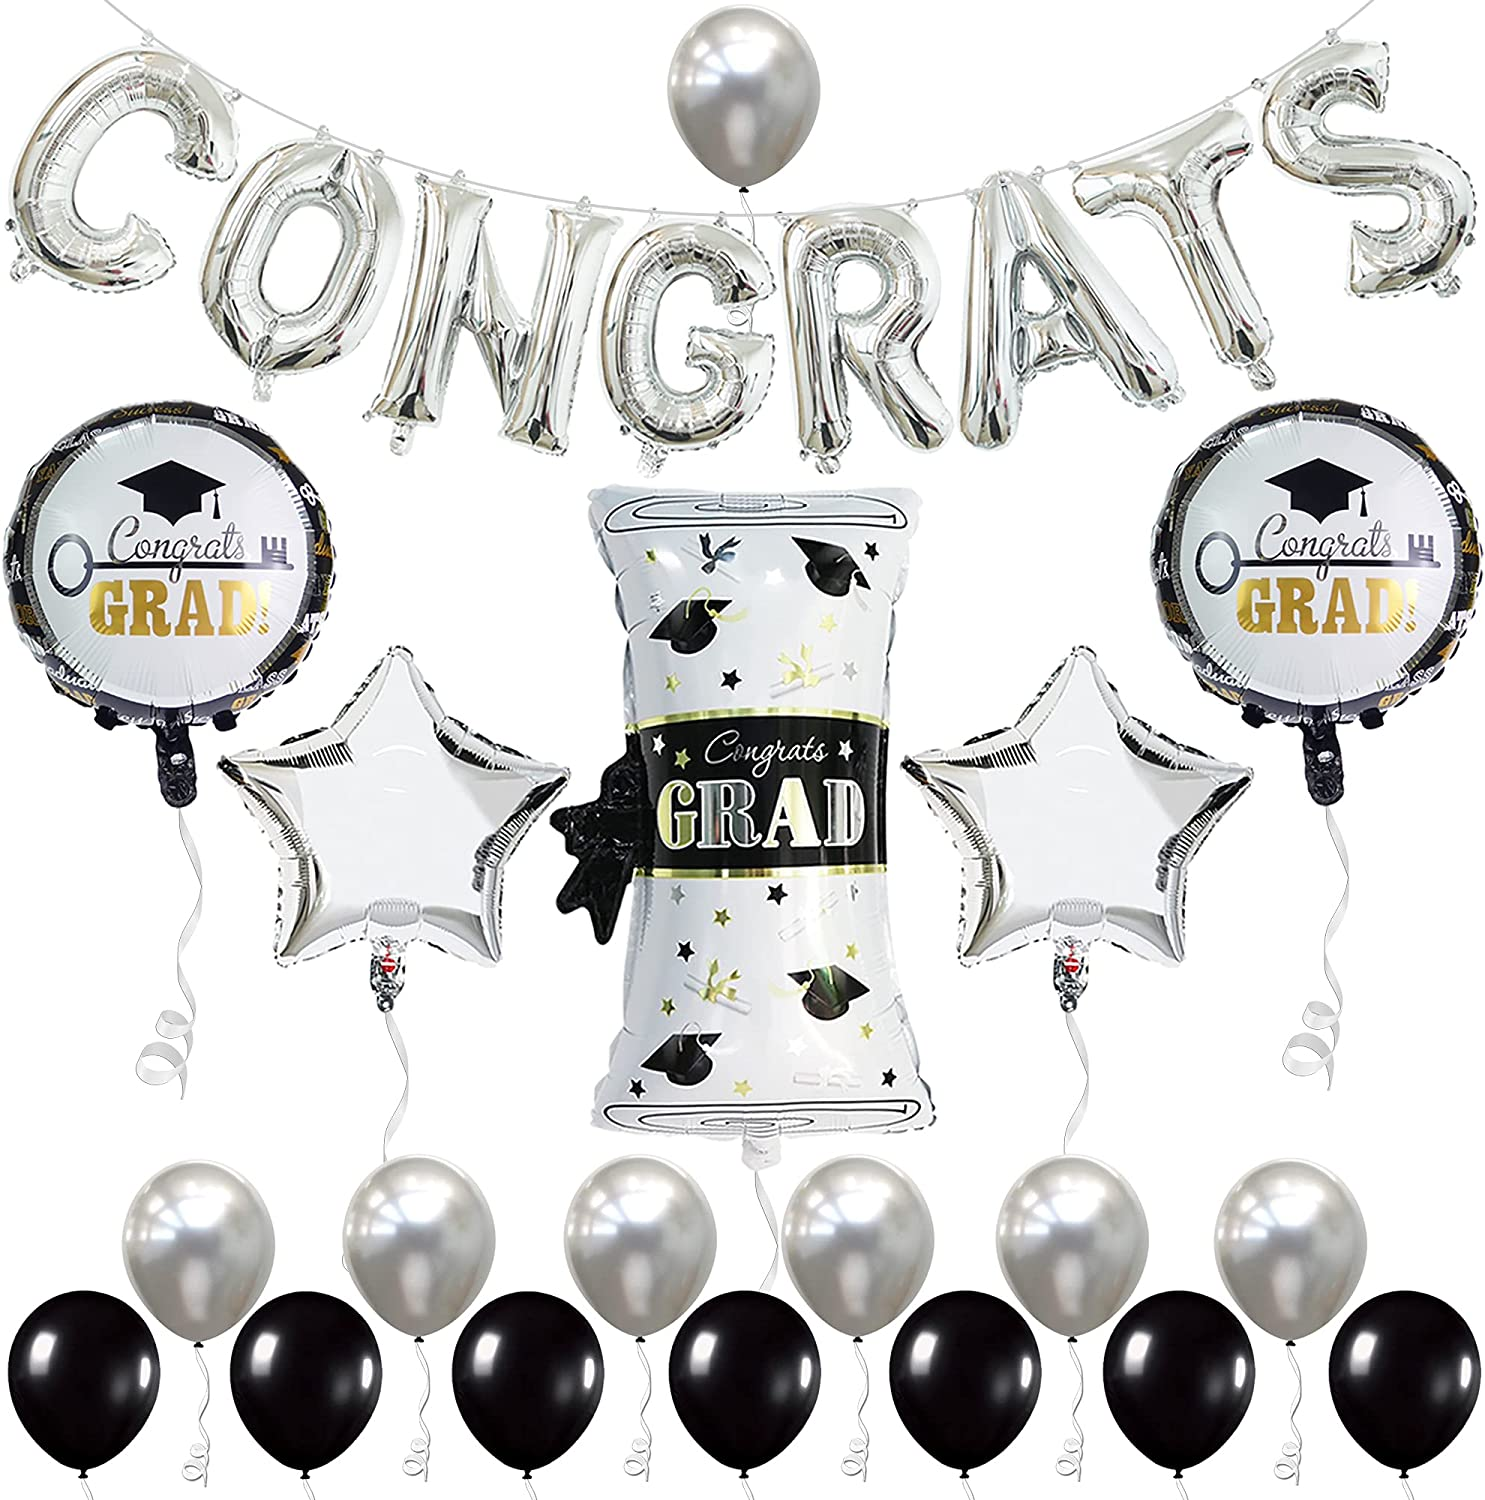 Silver Congrats Balloons for Graduation Decorations 2021 - Large